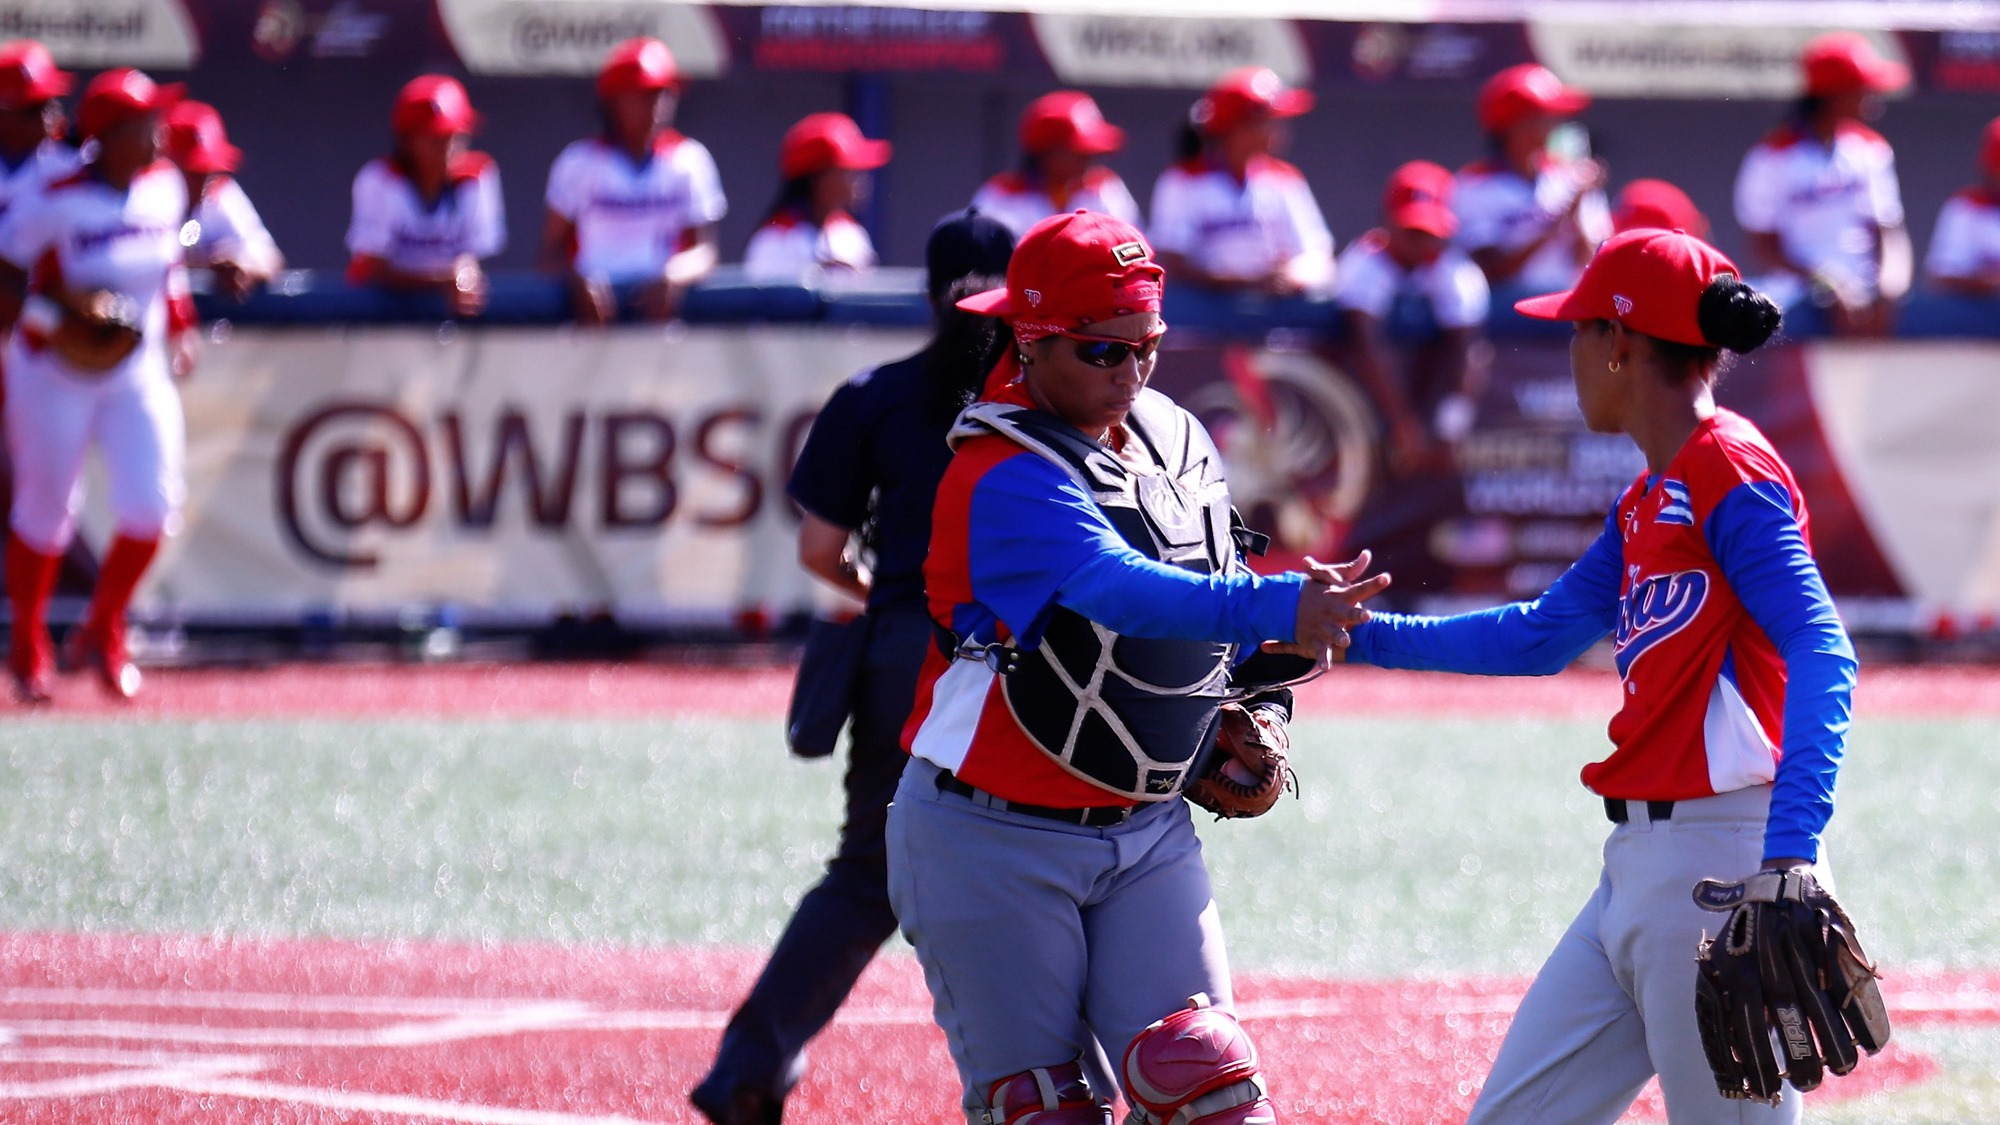 Catcher Yordanka Rodriguez congratulates Porro after the game with the Dominican Republic